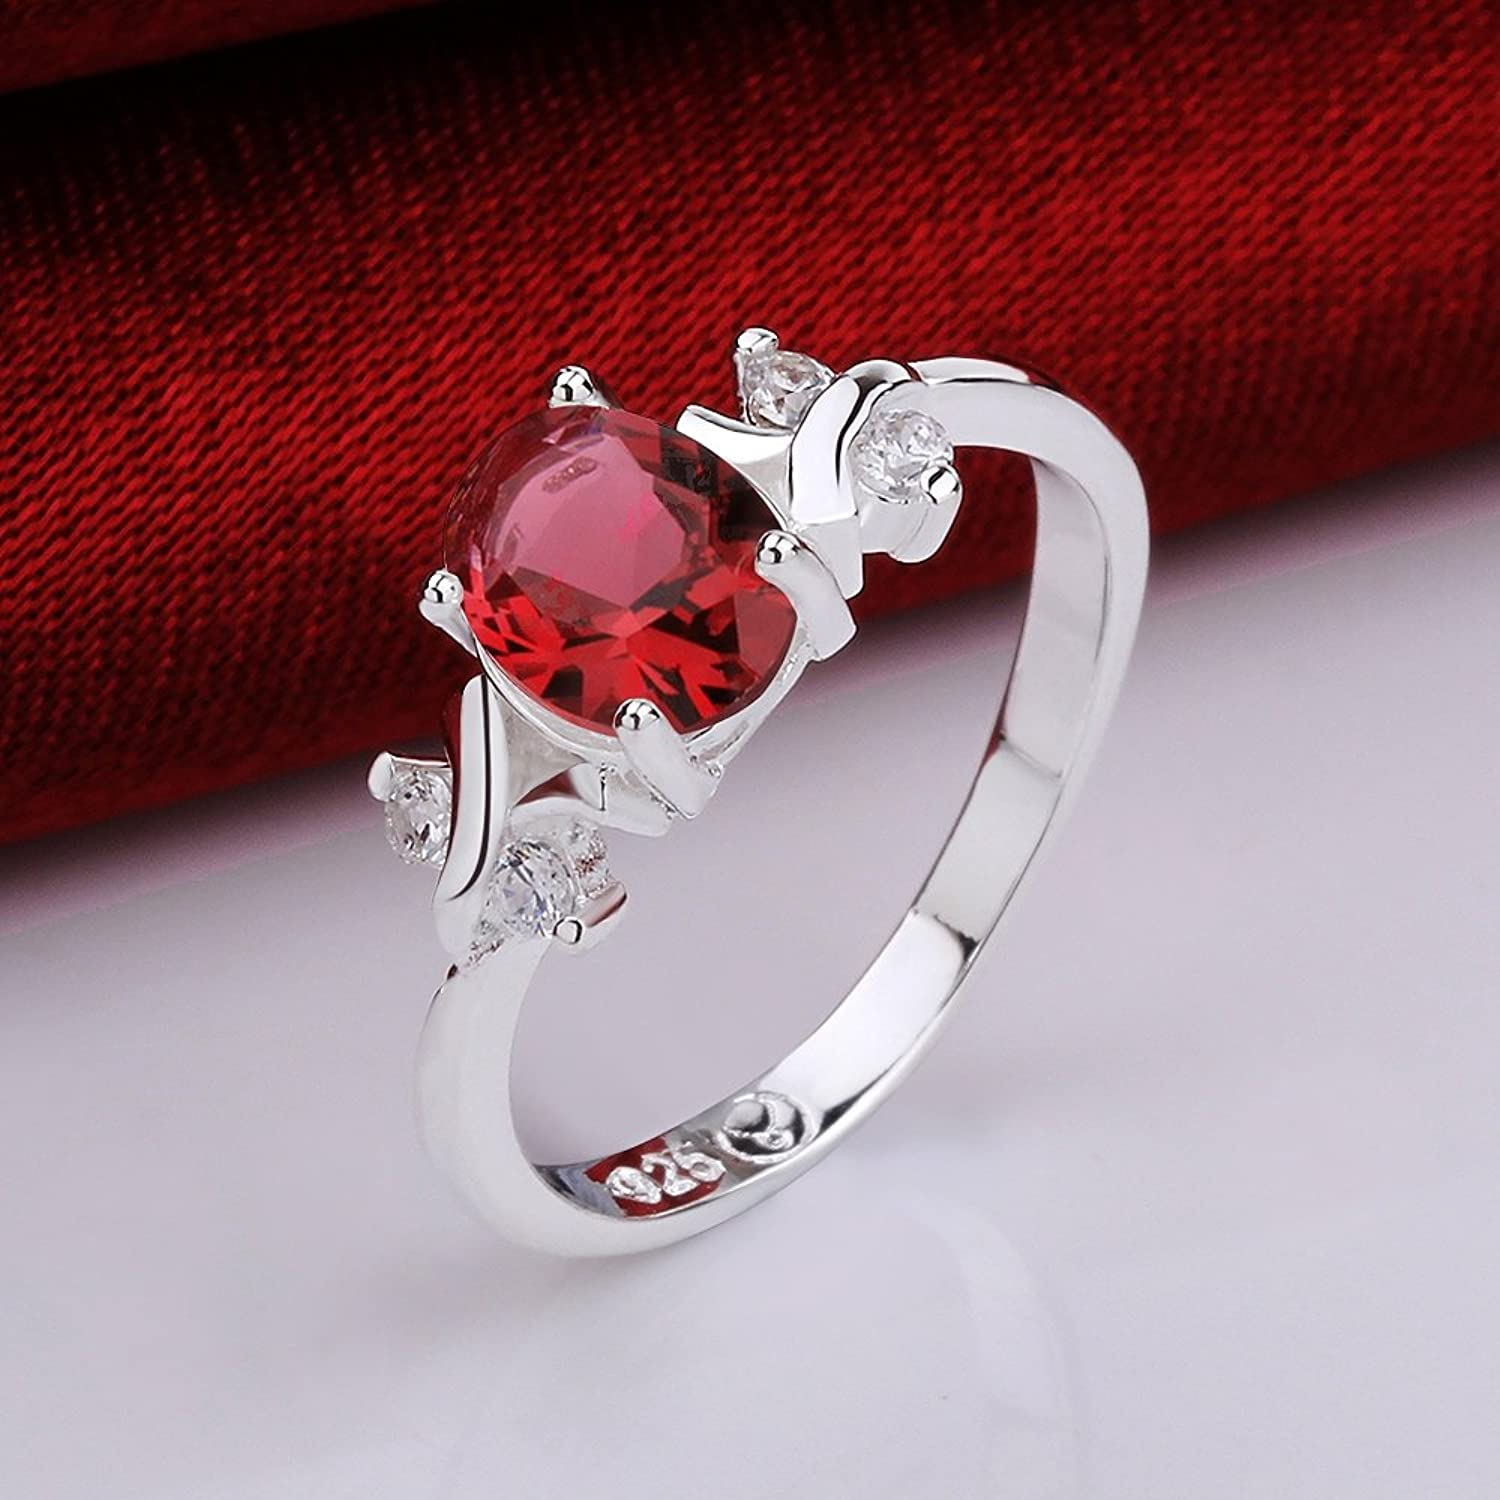 gold female product rings black ring women white filled red store index vintage junxin oval wedding jewelry for fashion